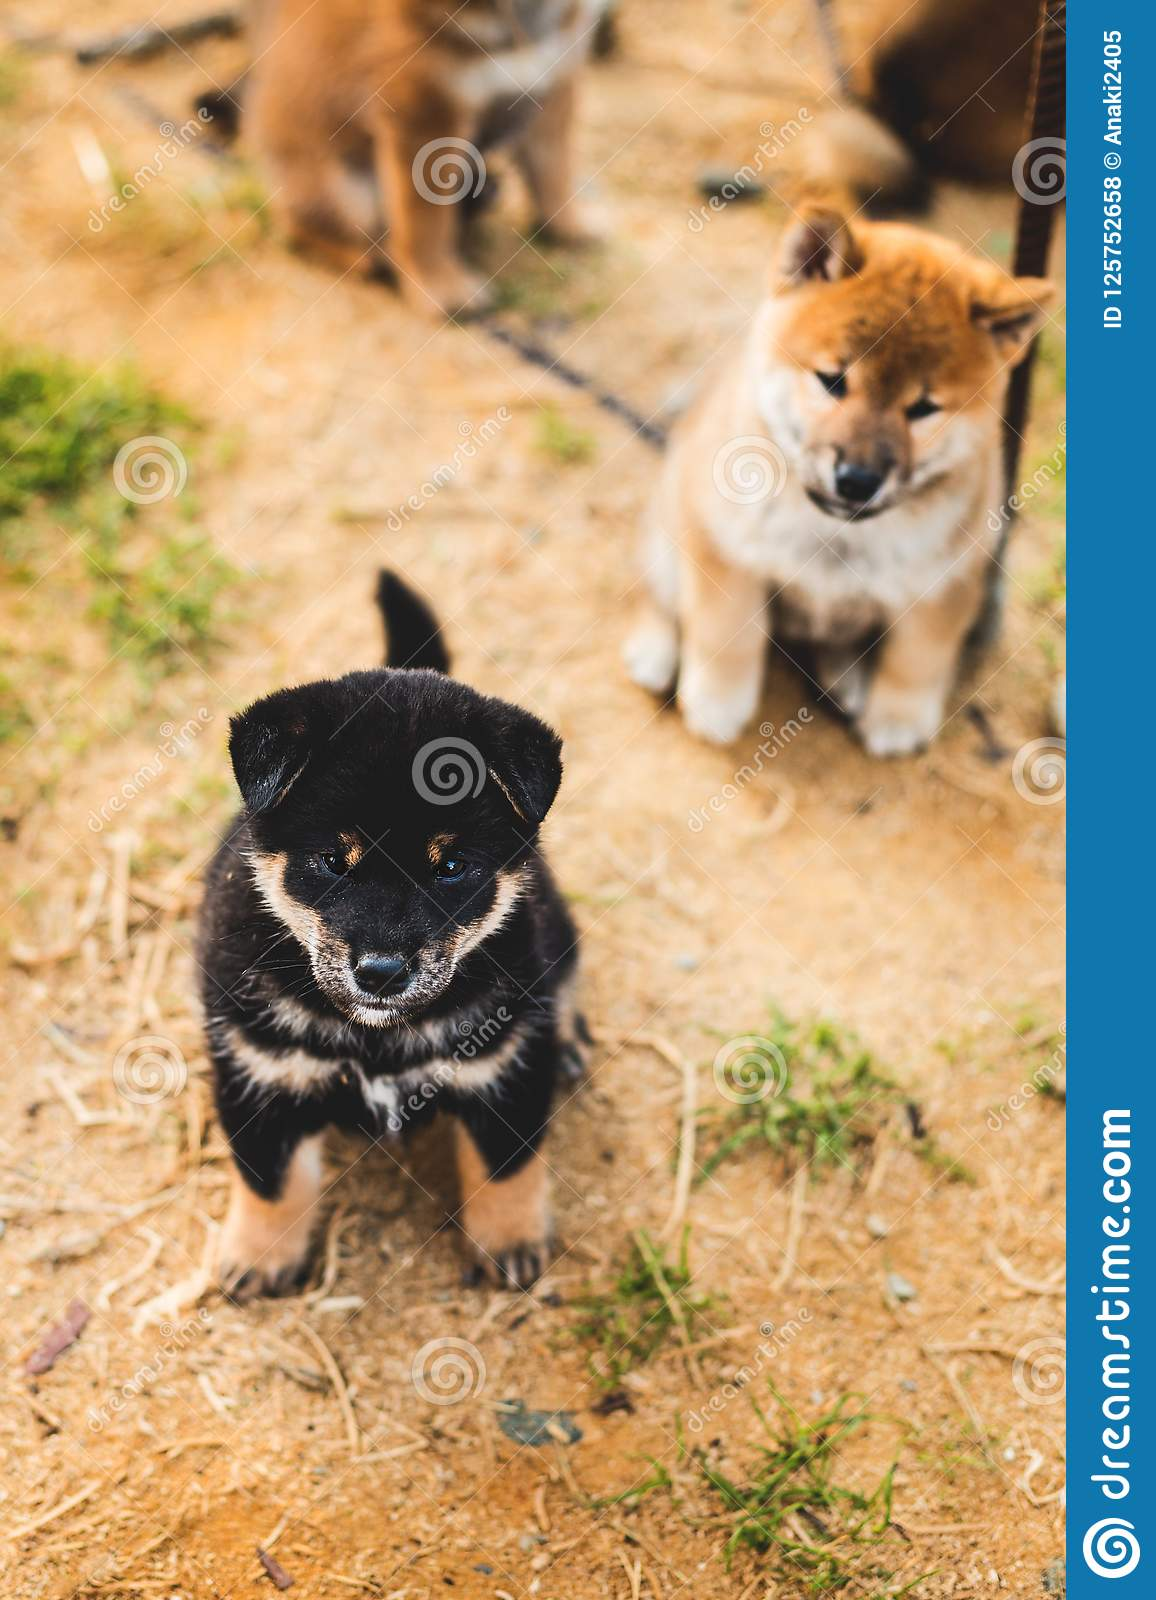 Portrait Of Cute Black And Tan Shiba Inu Puppy Sitting Outside On The Ground And Looking To The Camera Stock Photo Image Of Domestic Portrait 125752658